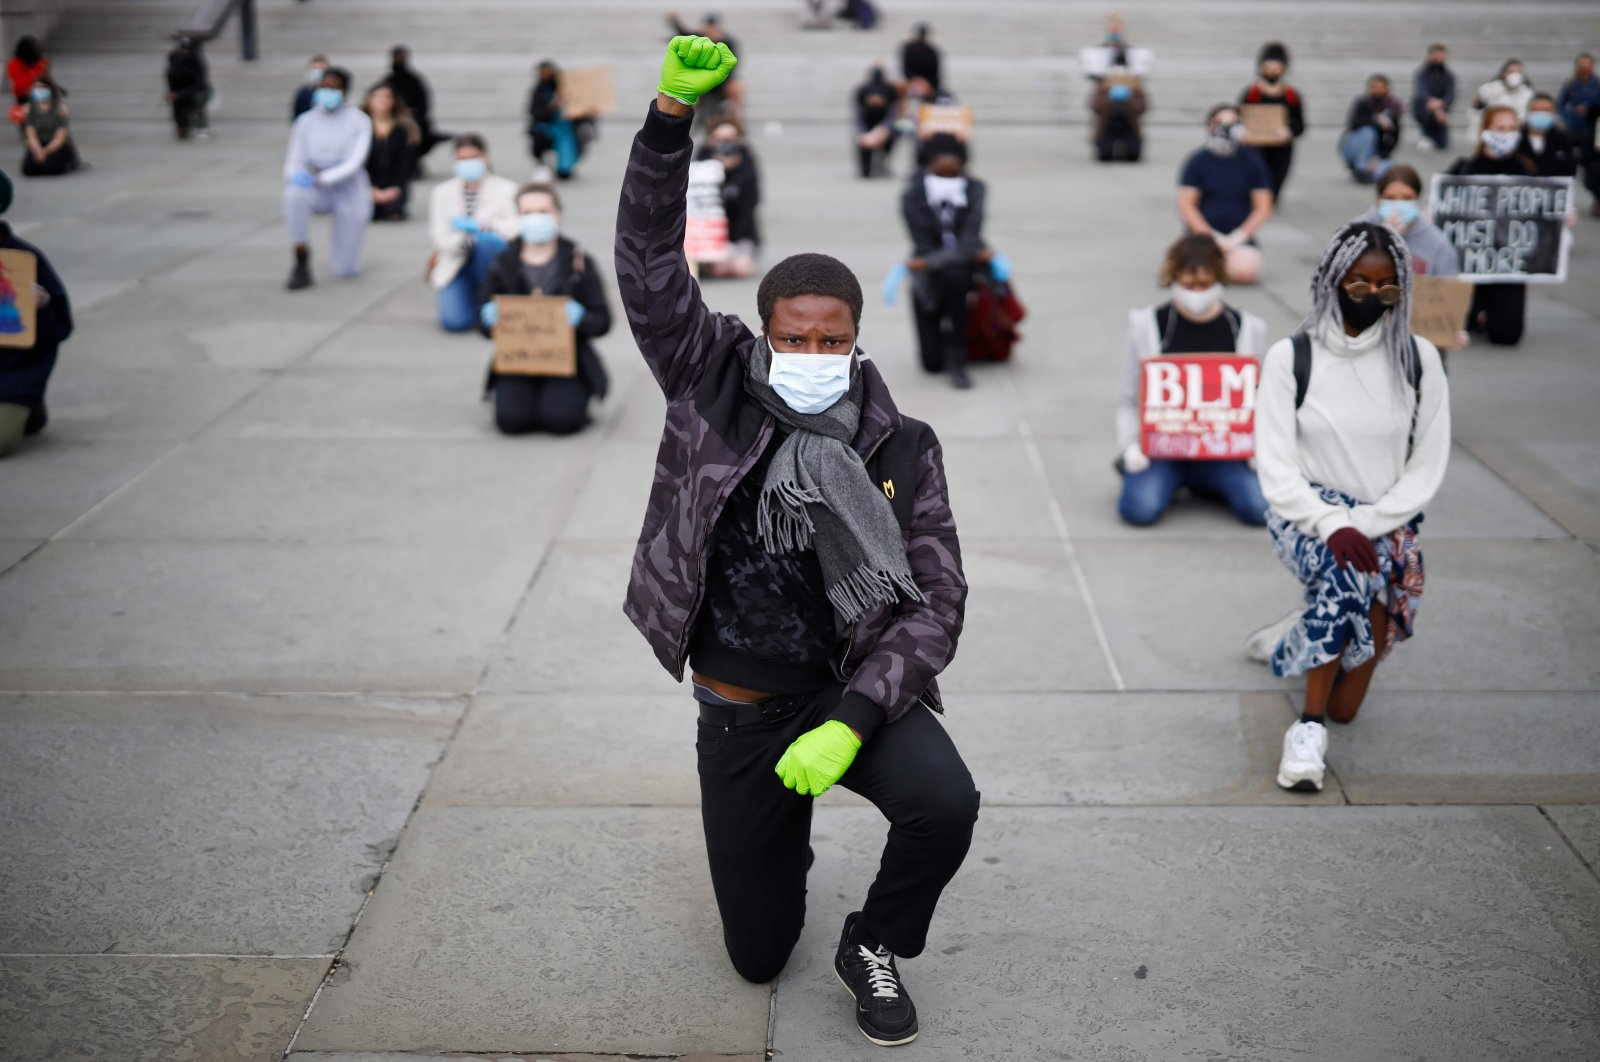 A protester makes a Black Lives Matter fist at a demonstration in Trafalgar Square in central London, to show solidarity with the Black Lives Matter movement in the wake of the killing of George Floyd, Britain, June 5, 2020. (AFP Photo)